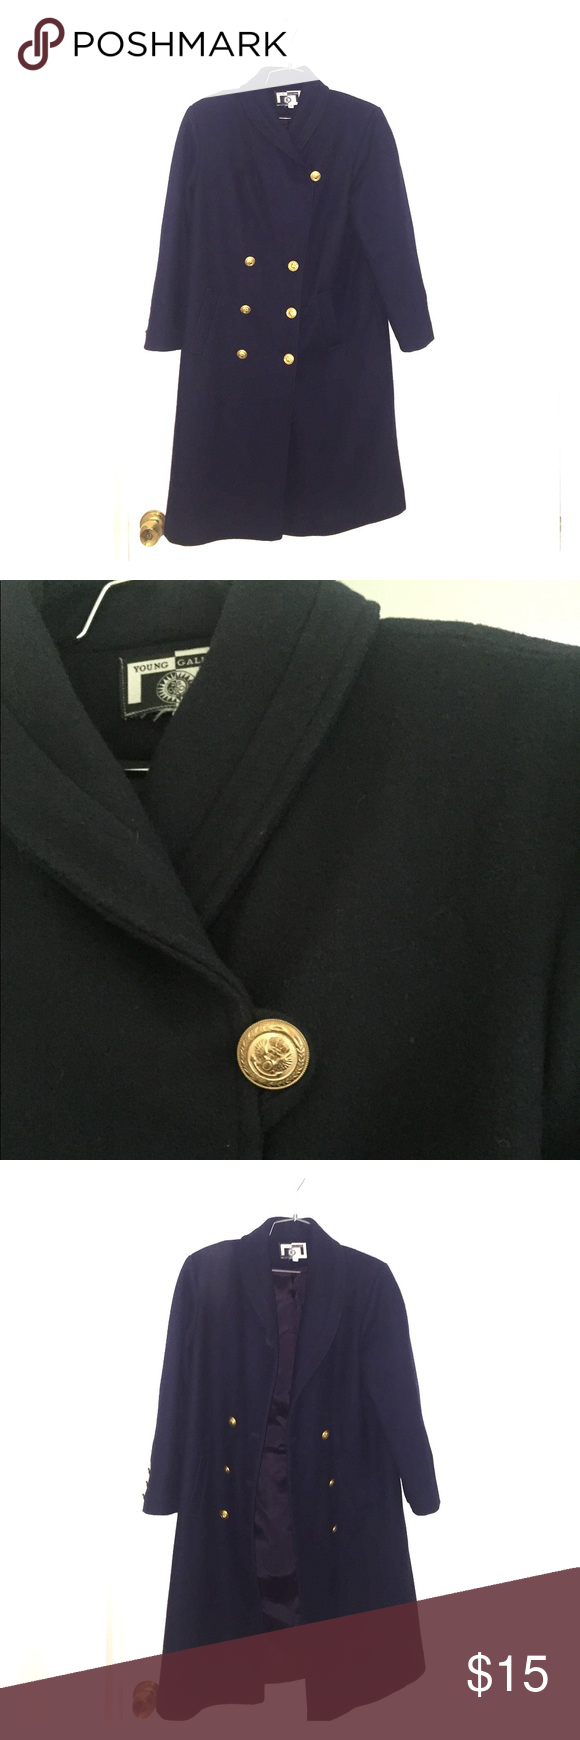 Young Gallery Full Length Pea Coat Hey Poshers here is a Young Gallery Full Length Wool Pea Coat with Gold Buttons in great Condition. Perfect for winter but on sale for summer! young Gallery Jackets & Coats Pea Coats